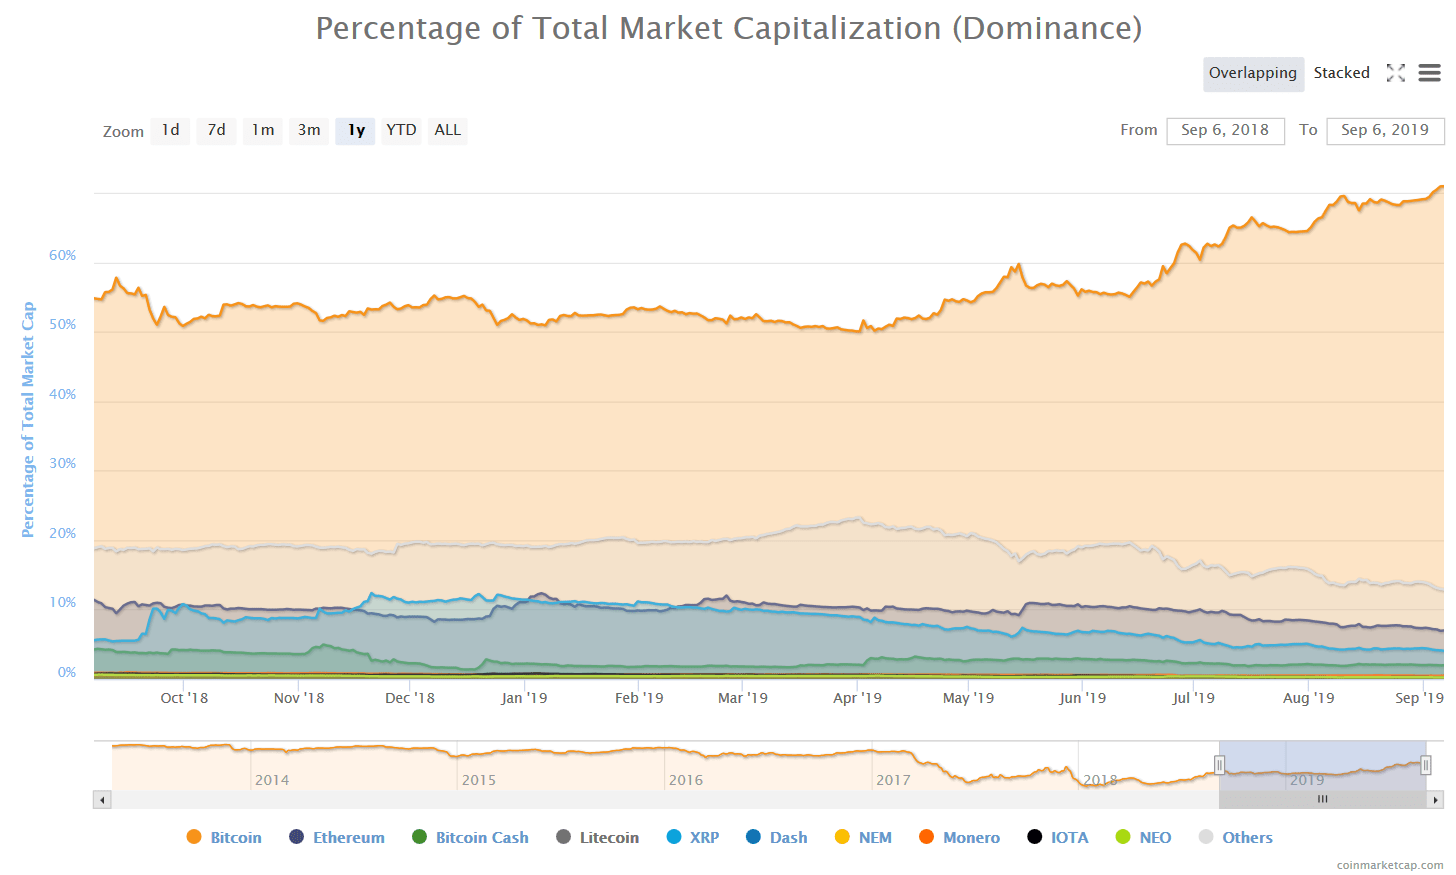 btc-dominance